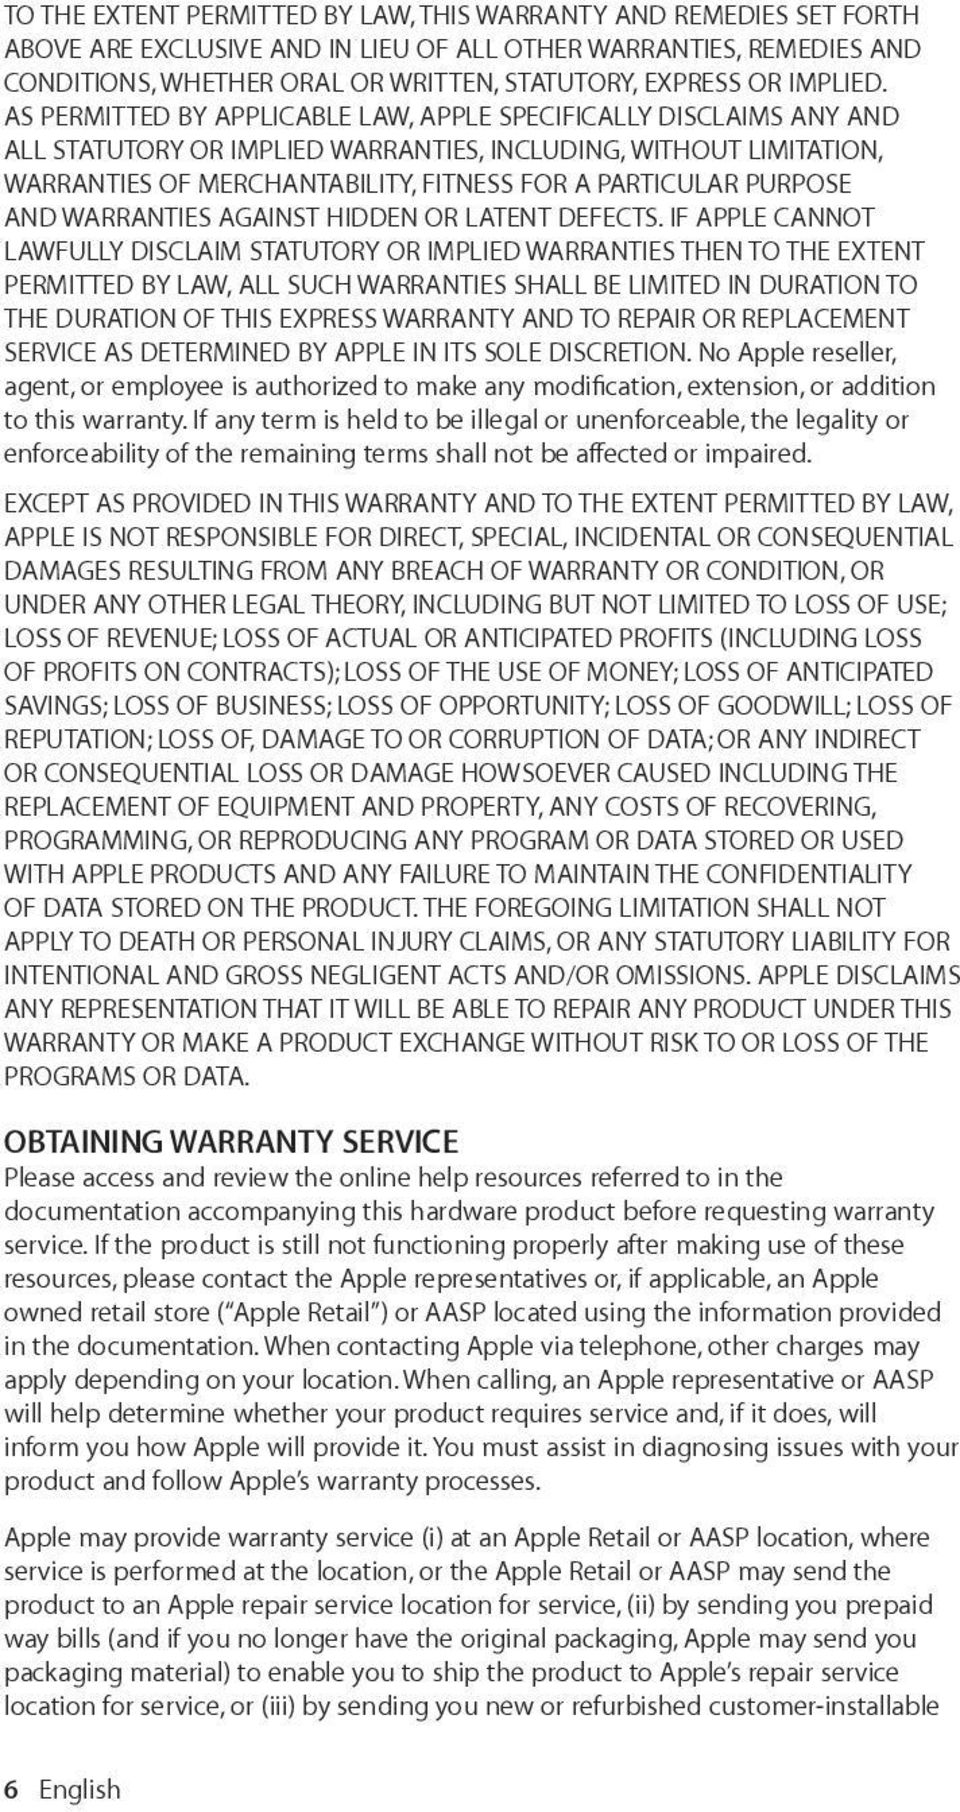 AS PERMITTED BY APPLICABLE LAW, APPLE SPECIFICALLY DISCLAIMS ANY AND ALL STATUTORY OR IMPLIED WARRANTIES, INCLUDING, WITHOUT LIMITATION, WARRANTIES OF MERCHANTABILITY, FITNESS FOR A PARTICULAR